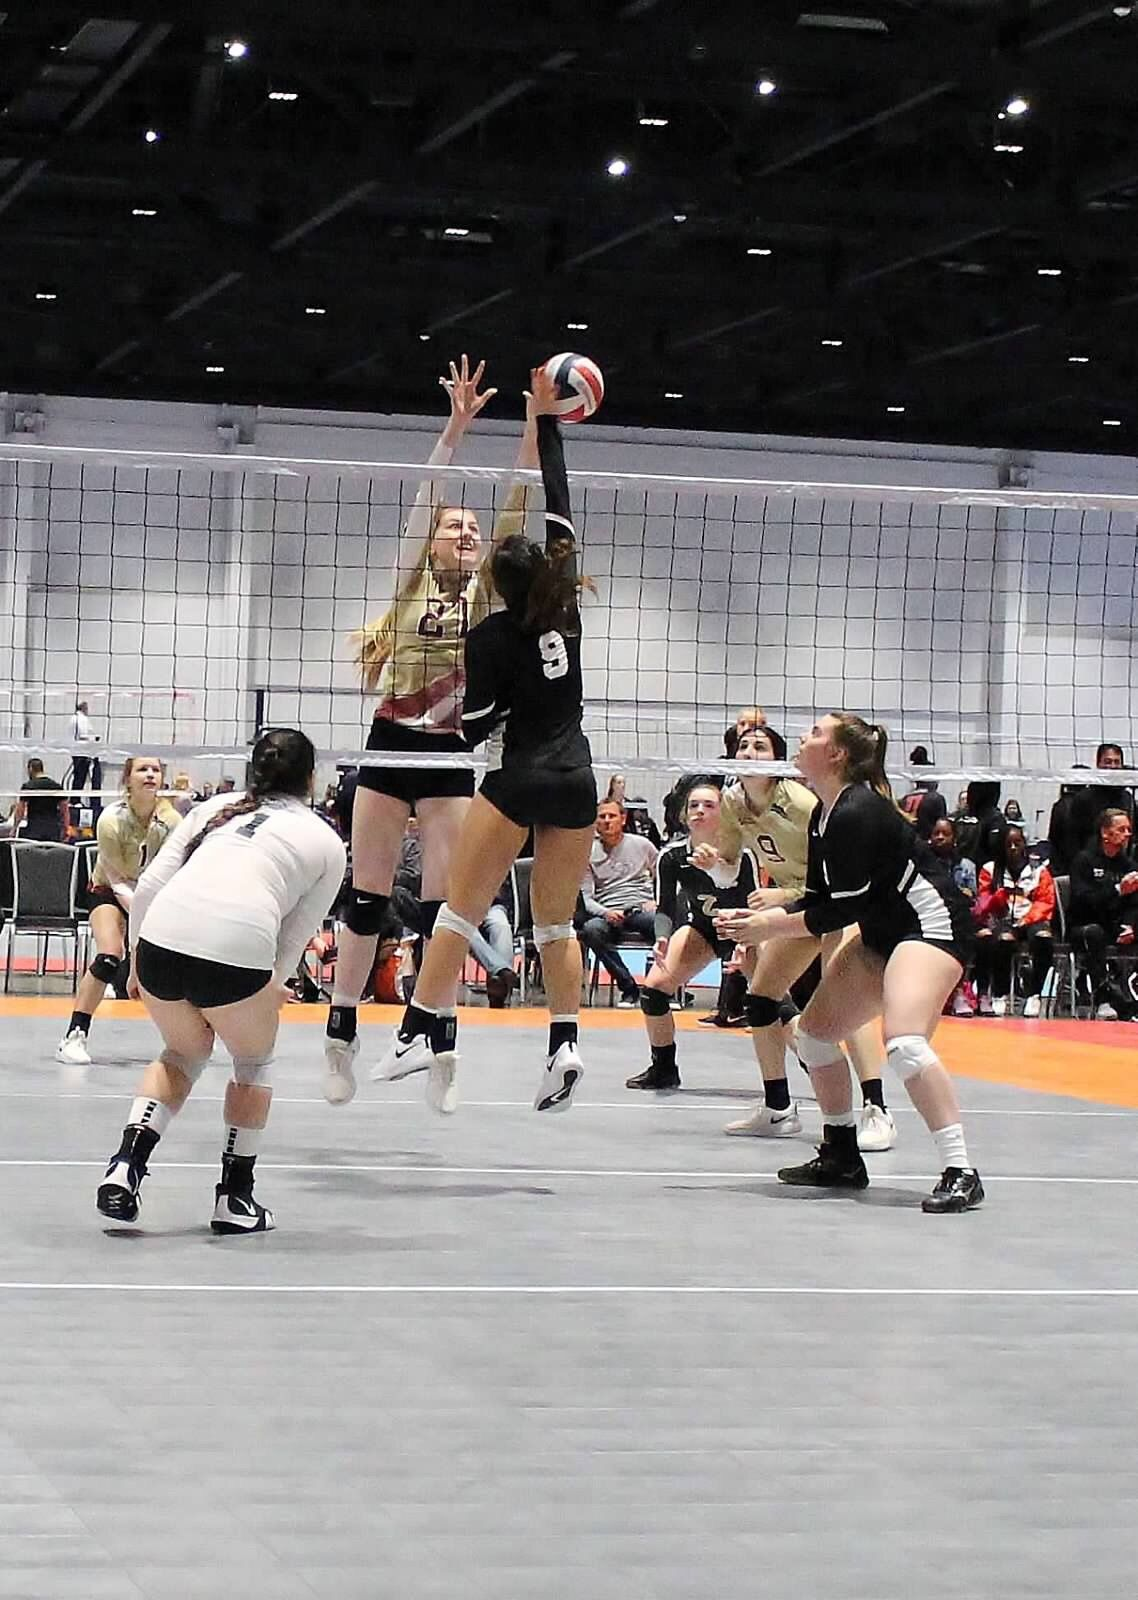 Rylee Gonzales Women S Volleyball Player From Usa Student Athlete College Recruiting Women Volleyball